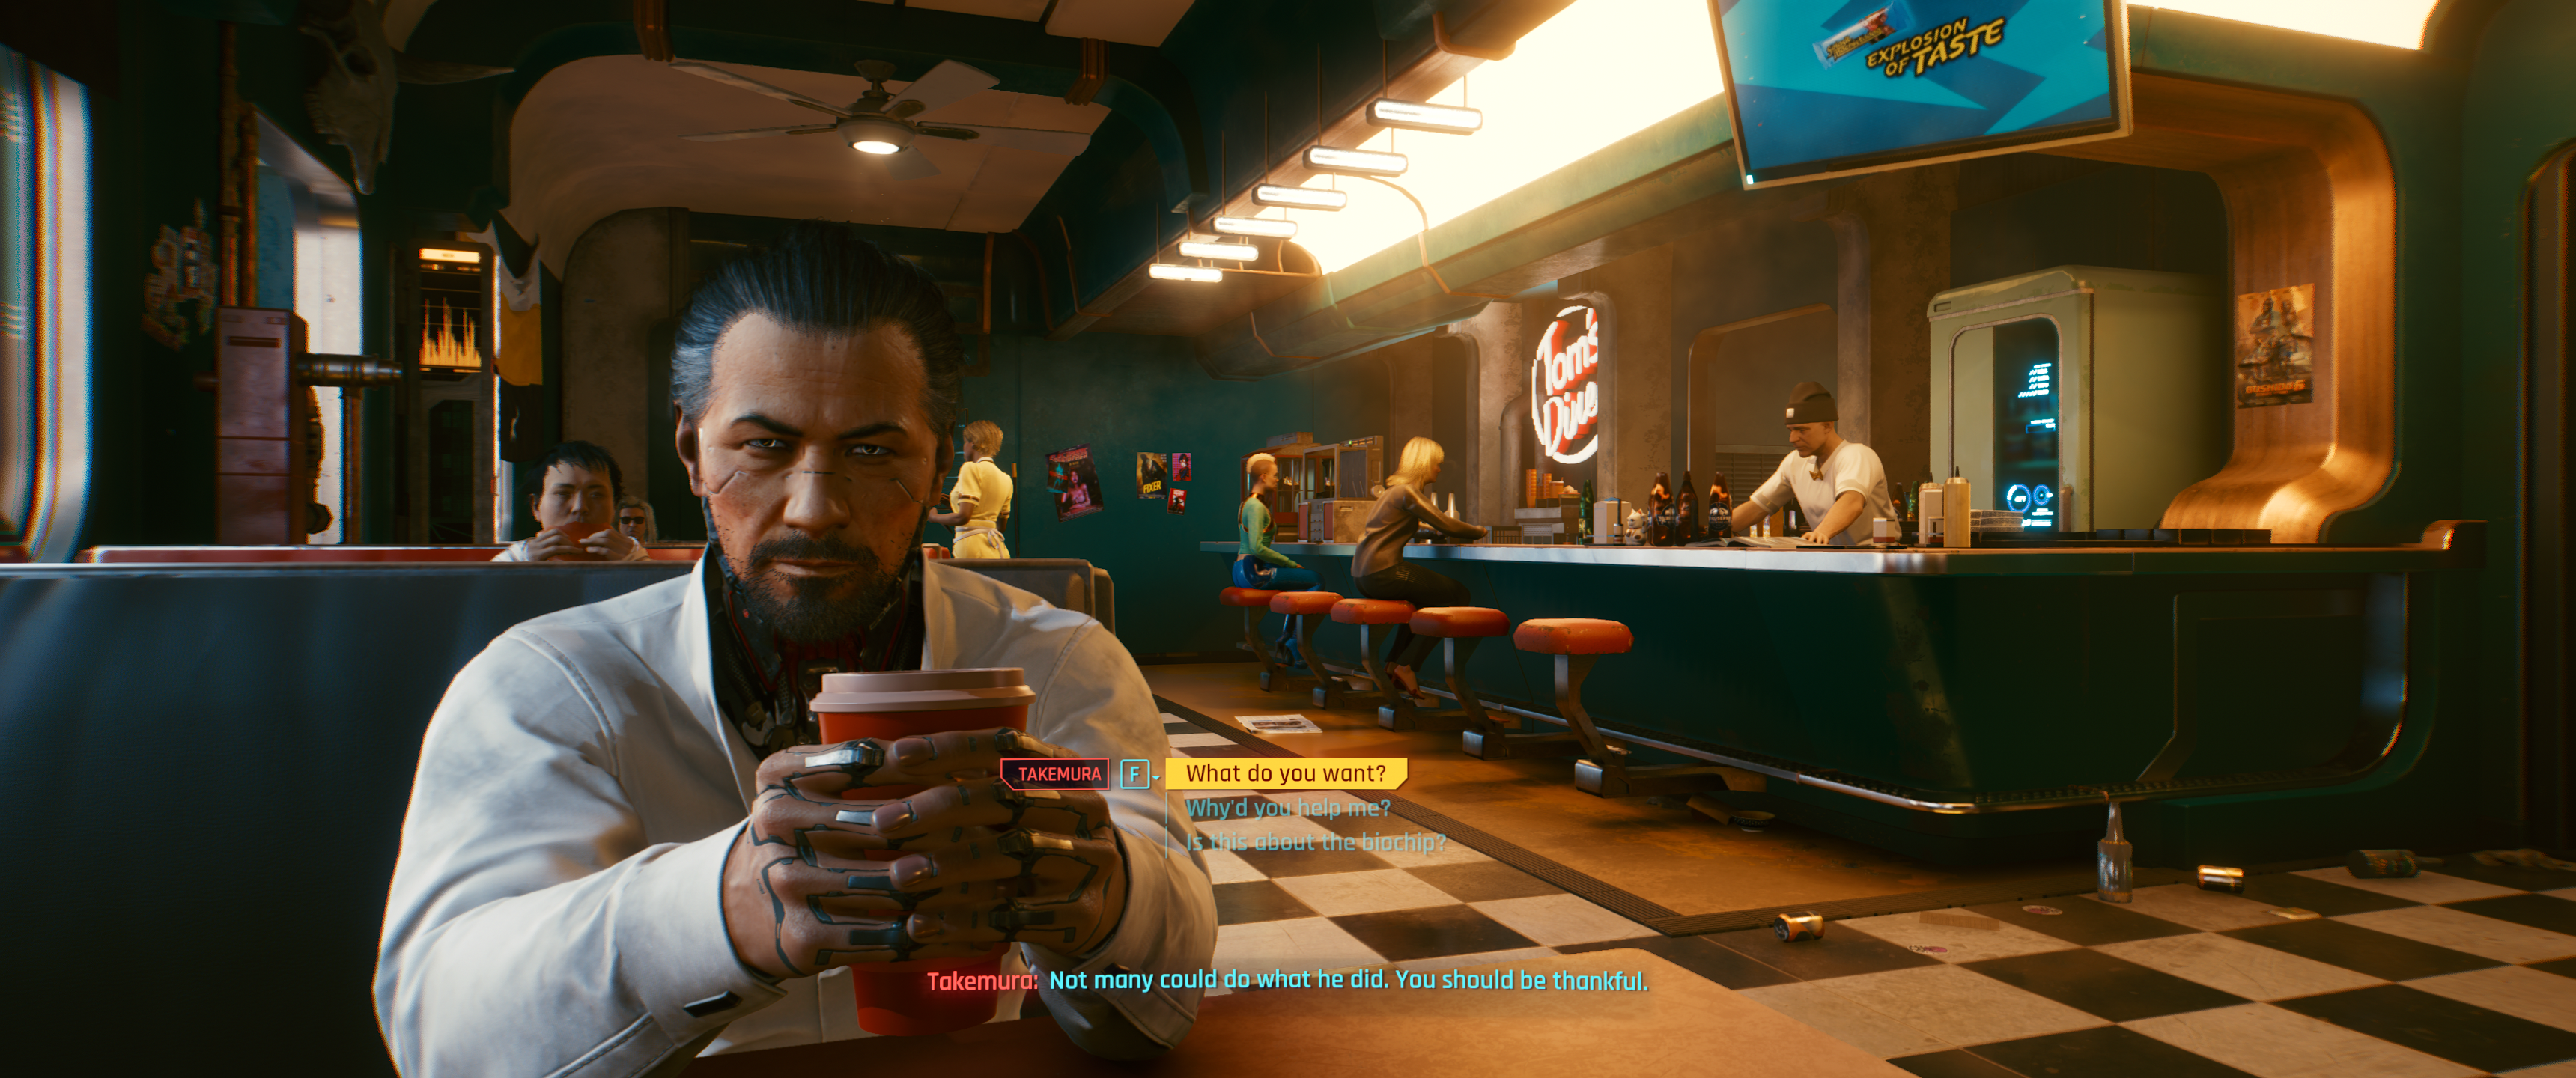 'Cyberpunk' Is Several Different Games, and You Choose Which One to Play